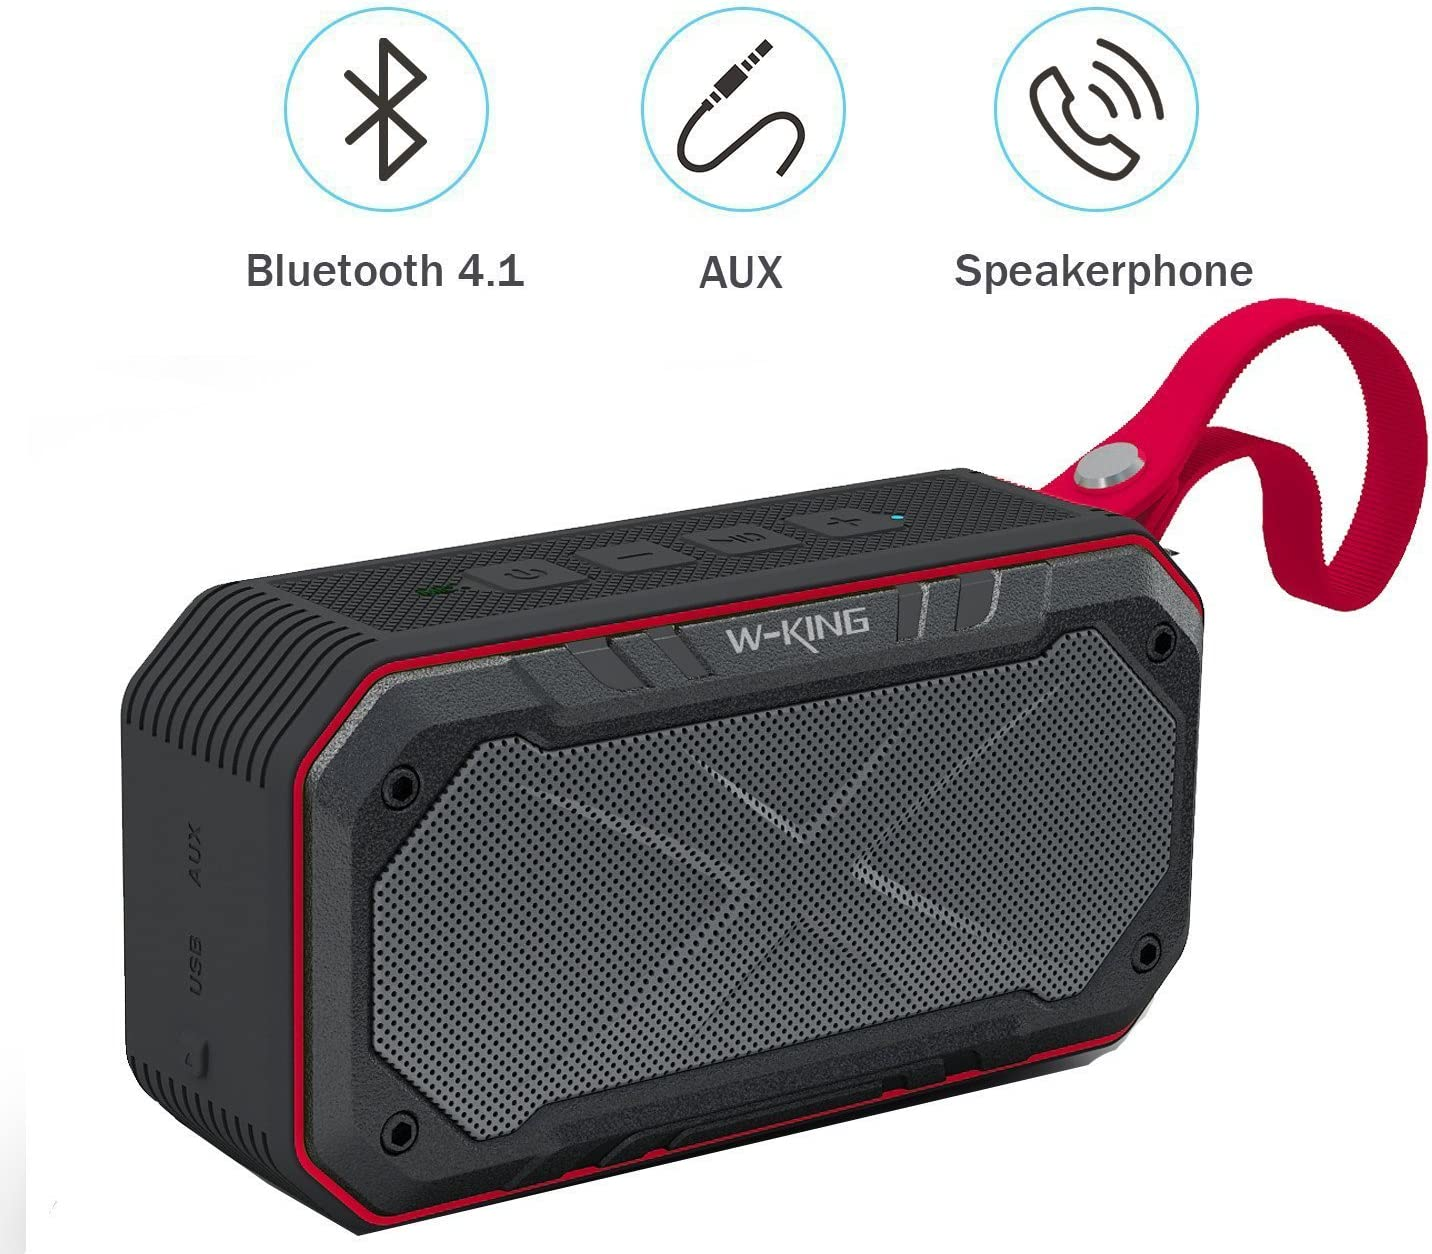 WONFAST Bluetooth Speaker IPX7 Waterproof Bluetooth4.1 Portable Mini Outdoor Sport Wireless Speaker,5W Dual Voice Coil Stereo Built-in Mic,Support FM Radio//TF Card//Audio Input Red